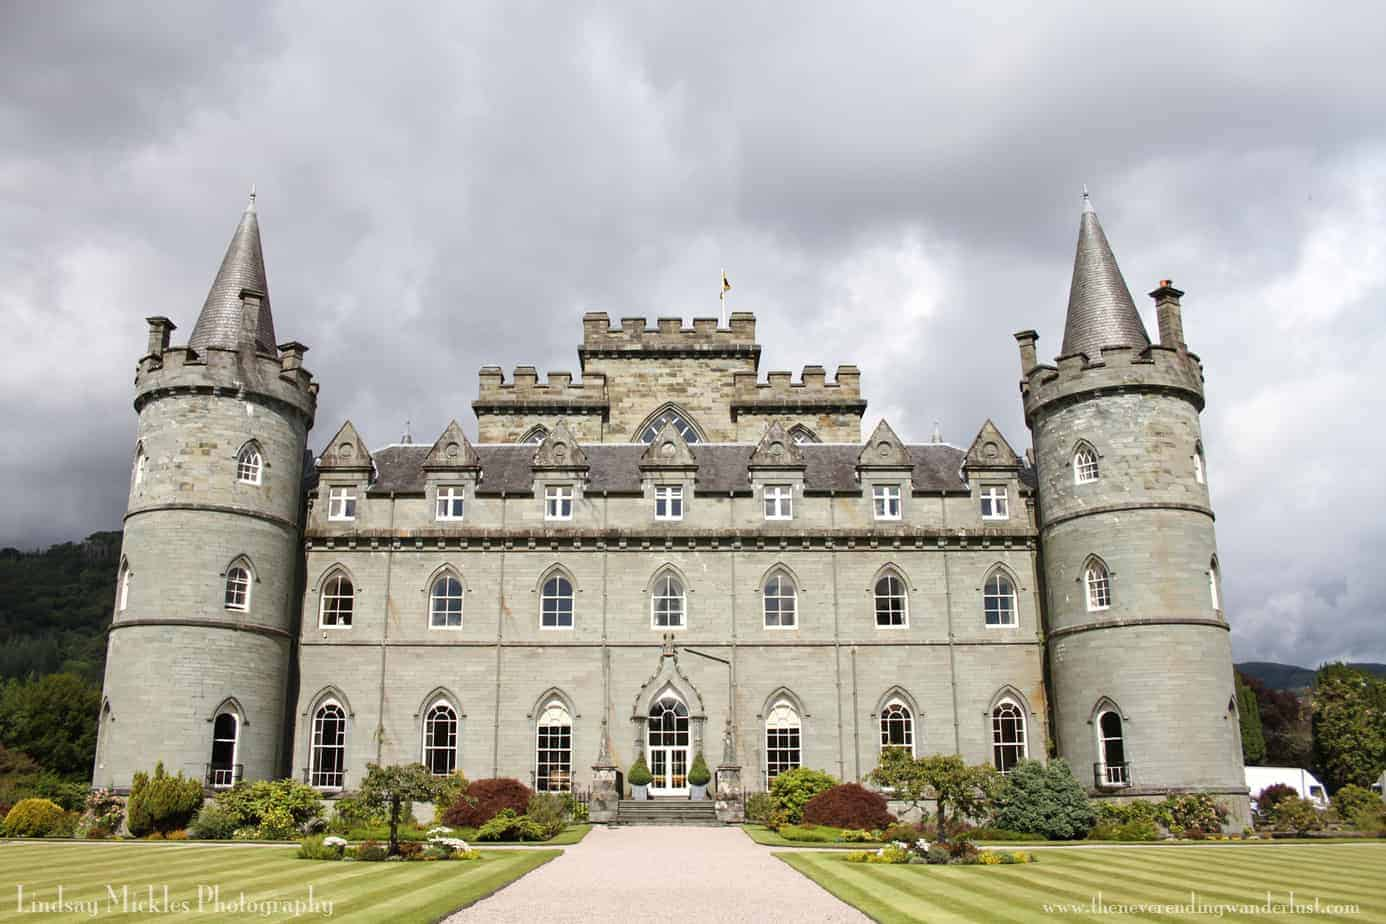 Discussion on this topic: A Guide to the Best Castles on , a-guide-to-the-best-castles-on/